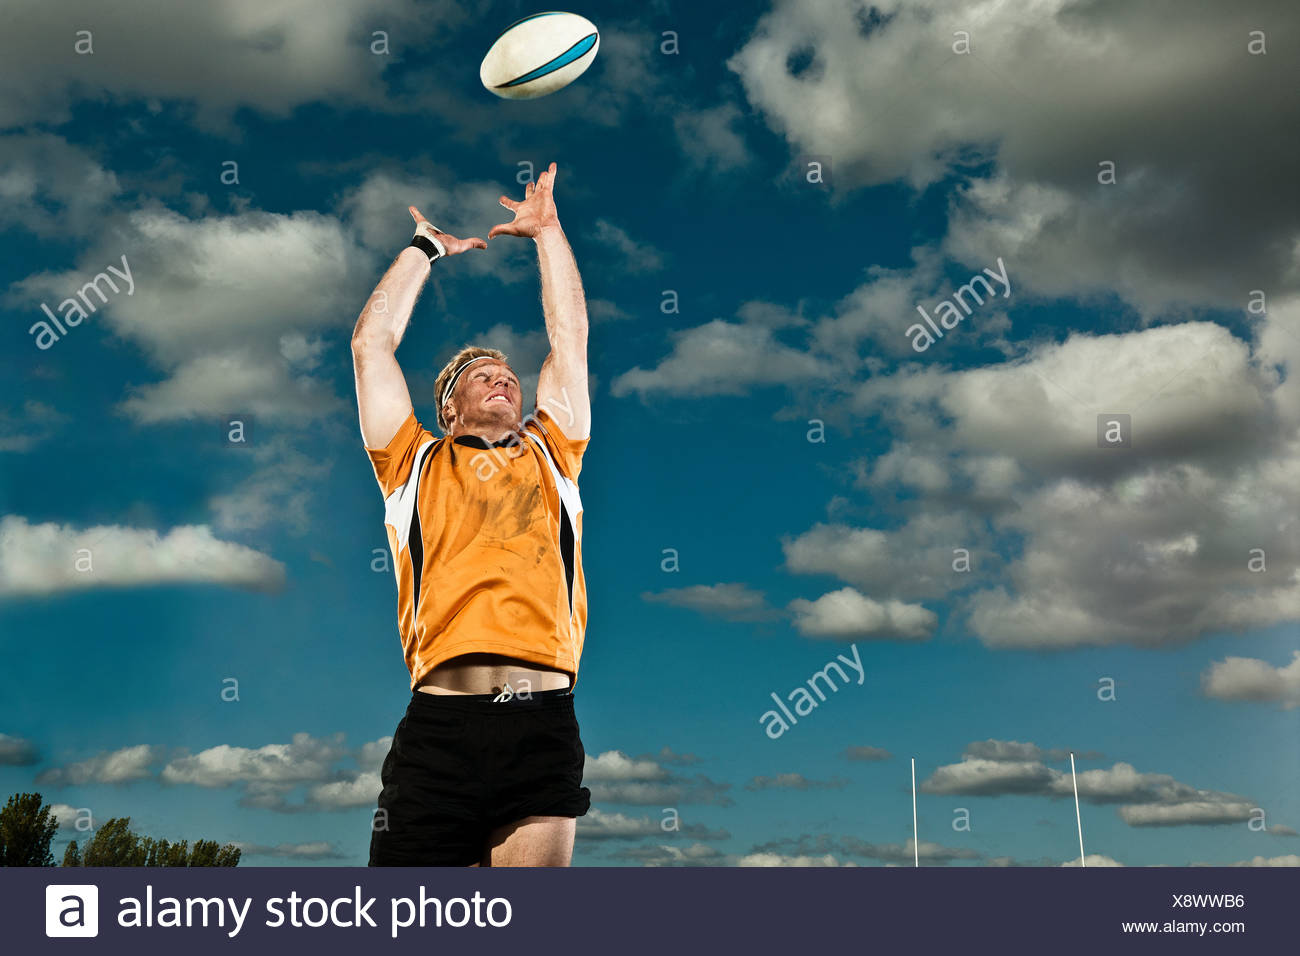 Rugby player leaping up to catch ball - Stock Image